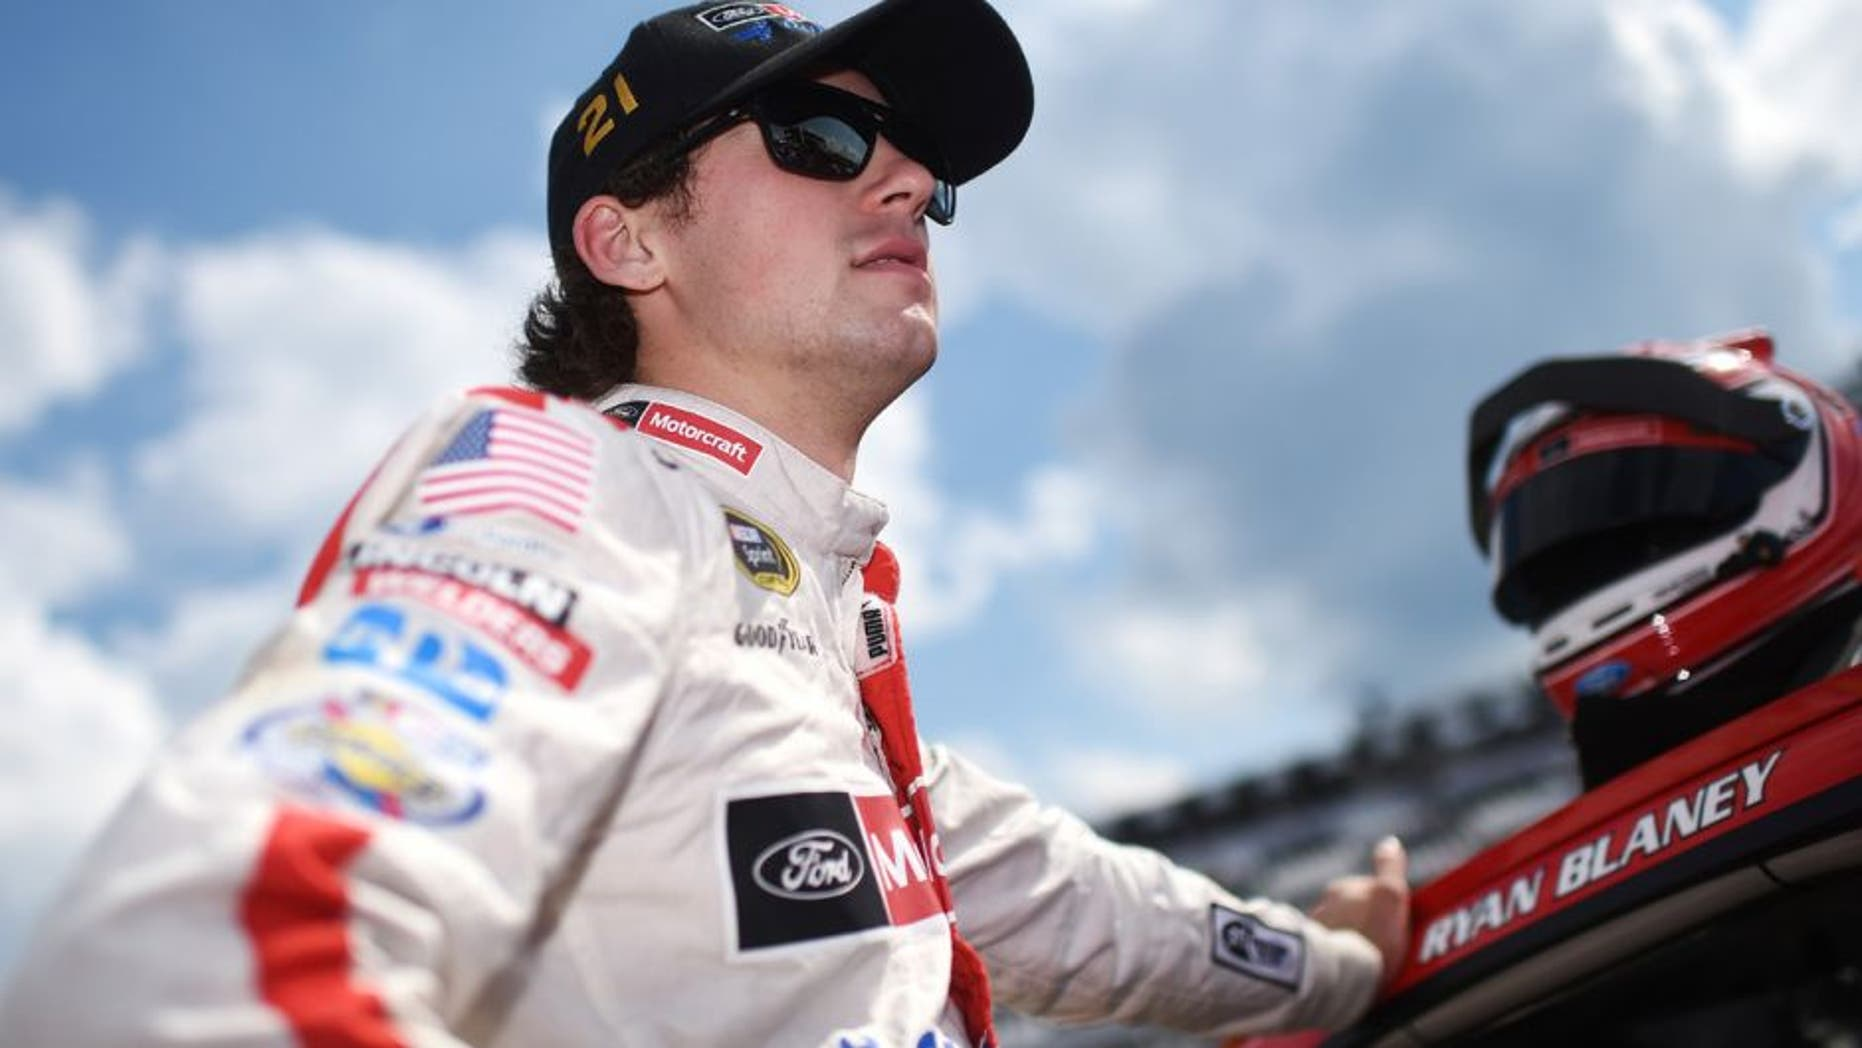 LONG POND, PA - JULY 29: Ryan Blaney, driver of the #21 Motorcraft/Quick Lane Tire & Auto Center Ford stands on the grid during qualifying for the NASCAR Sprint Cup Series Pennsylvania 400 at Pocono Raceway on July 29, 2016 in Long Pond, Pennsylvania. (Photo by Rainier Ehrhardt/NASCAR via Getty Images)